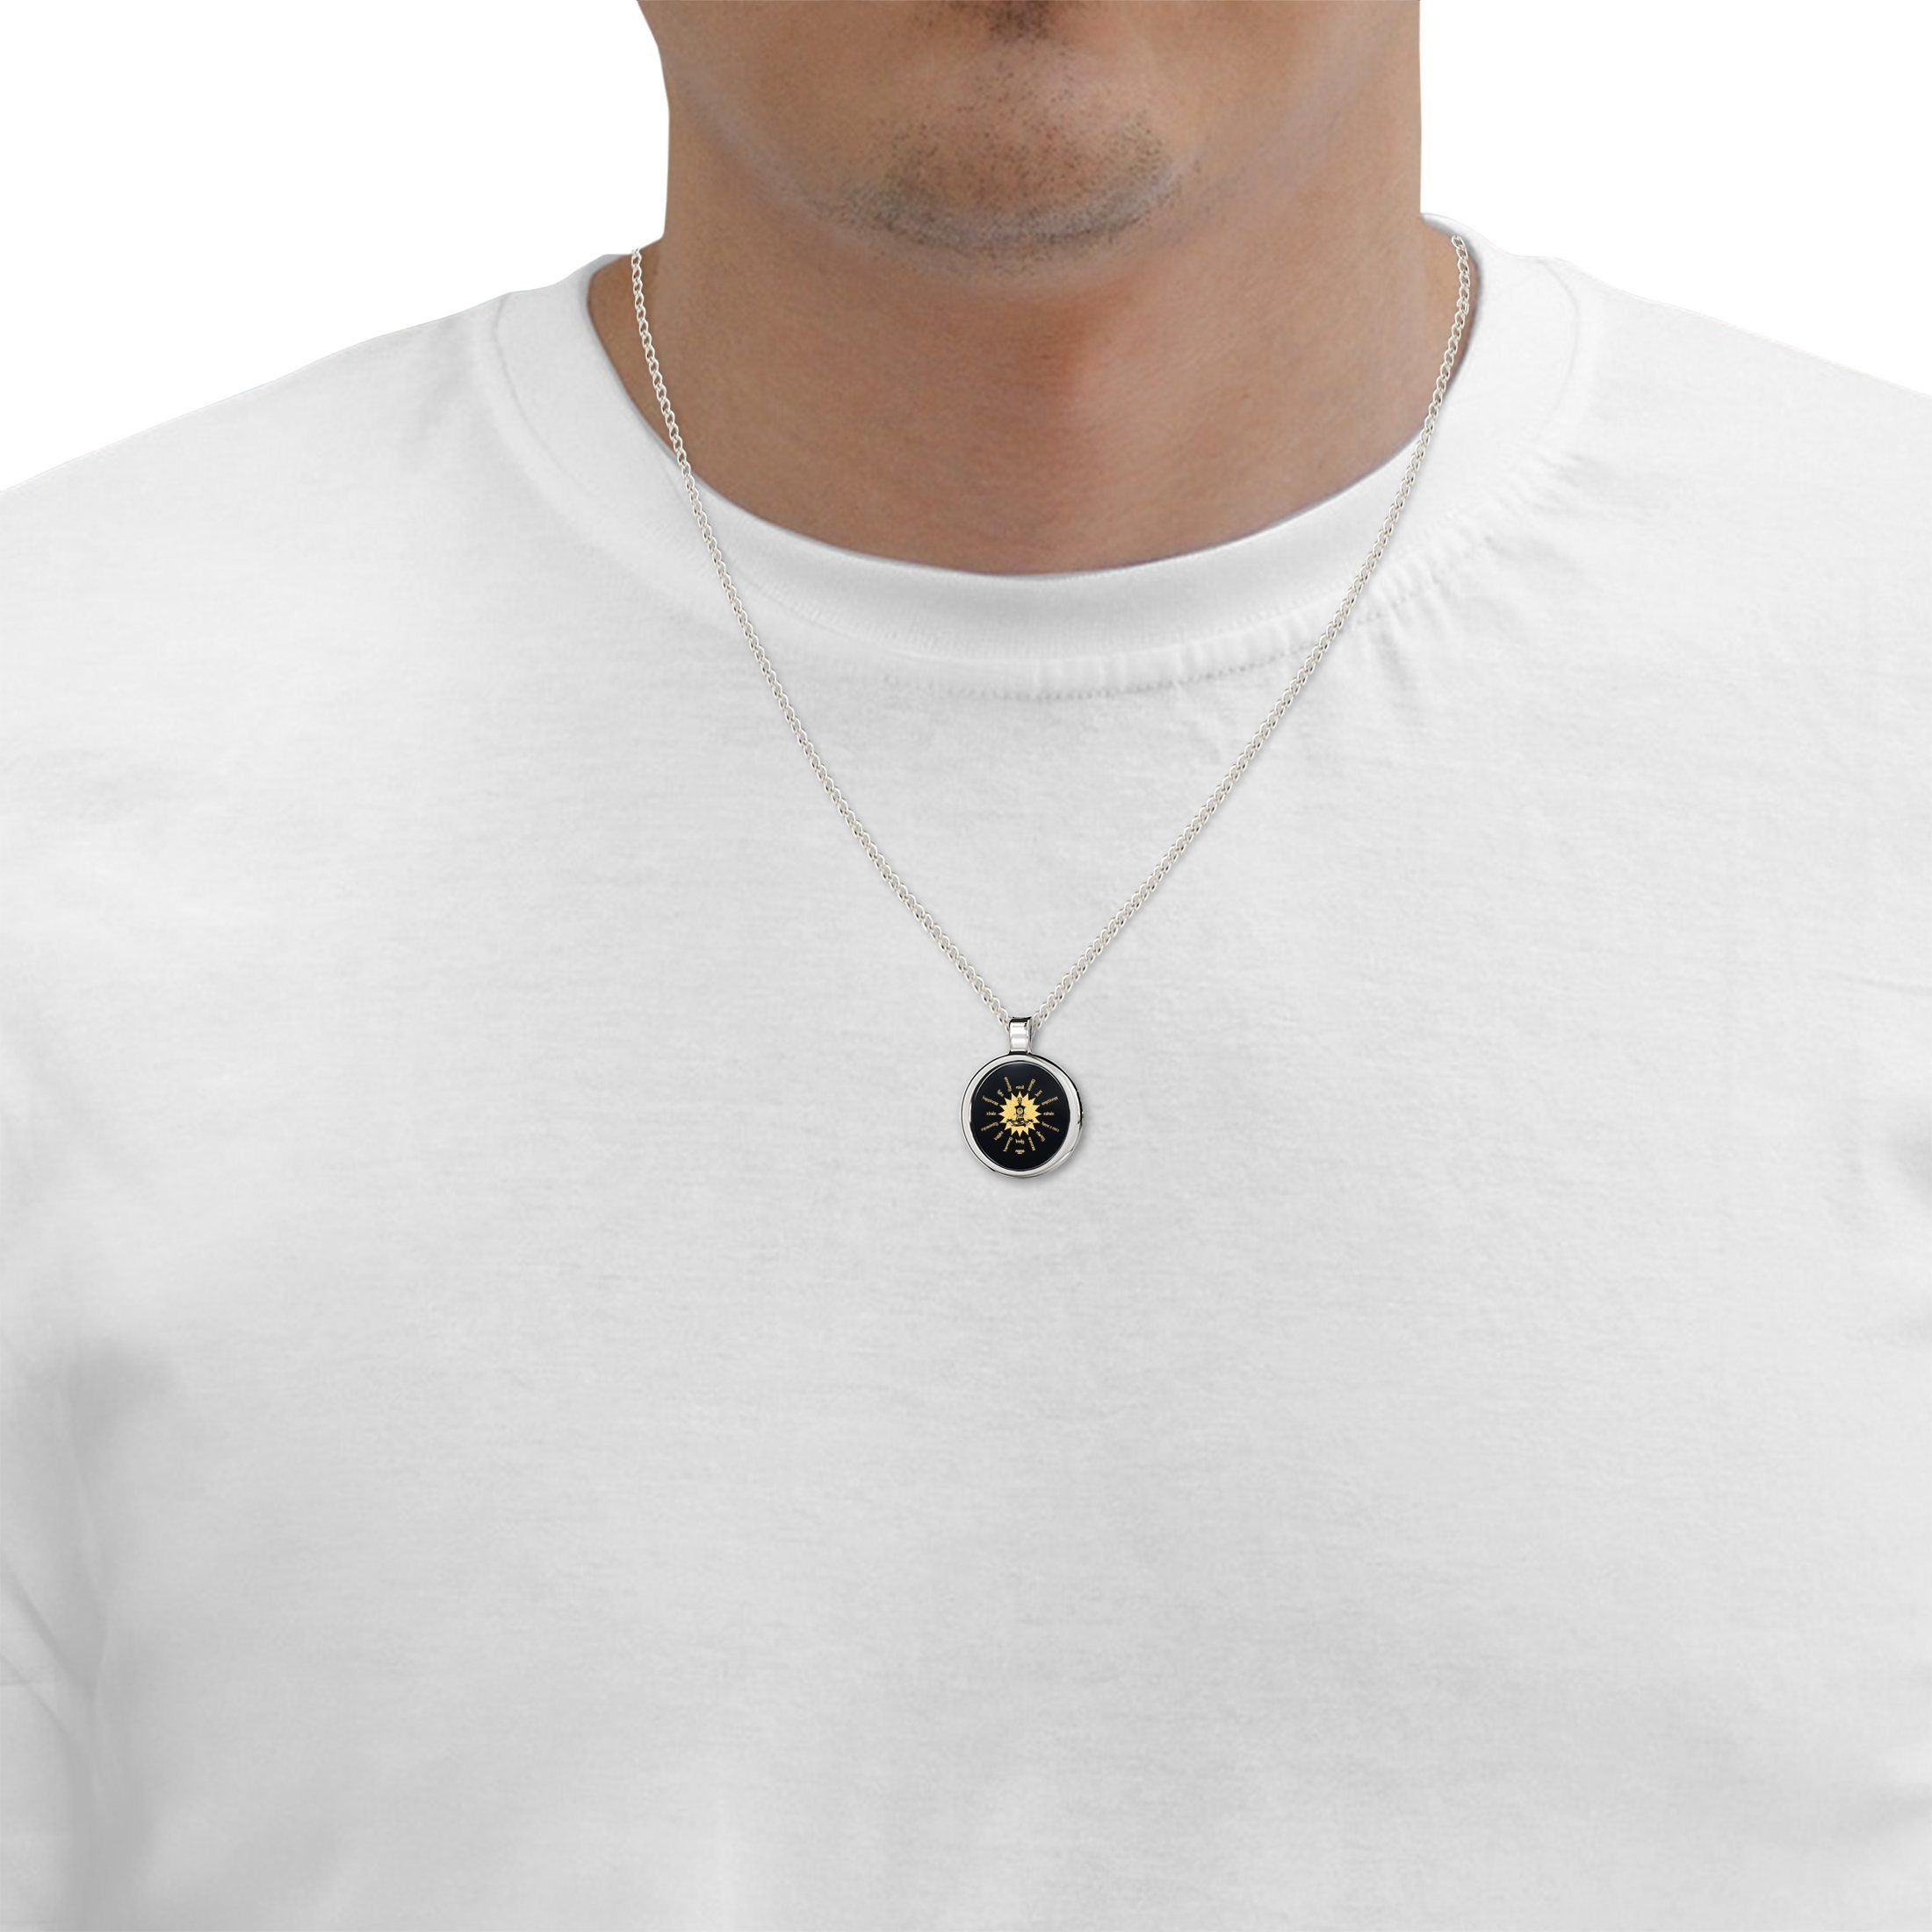 Mens Buddha Necklace, Nano Jewelry